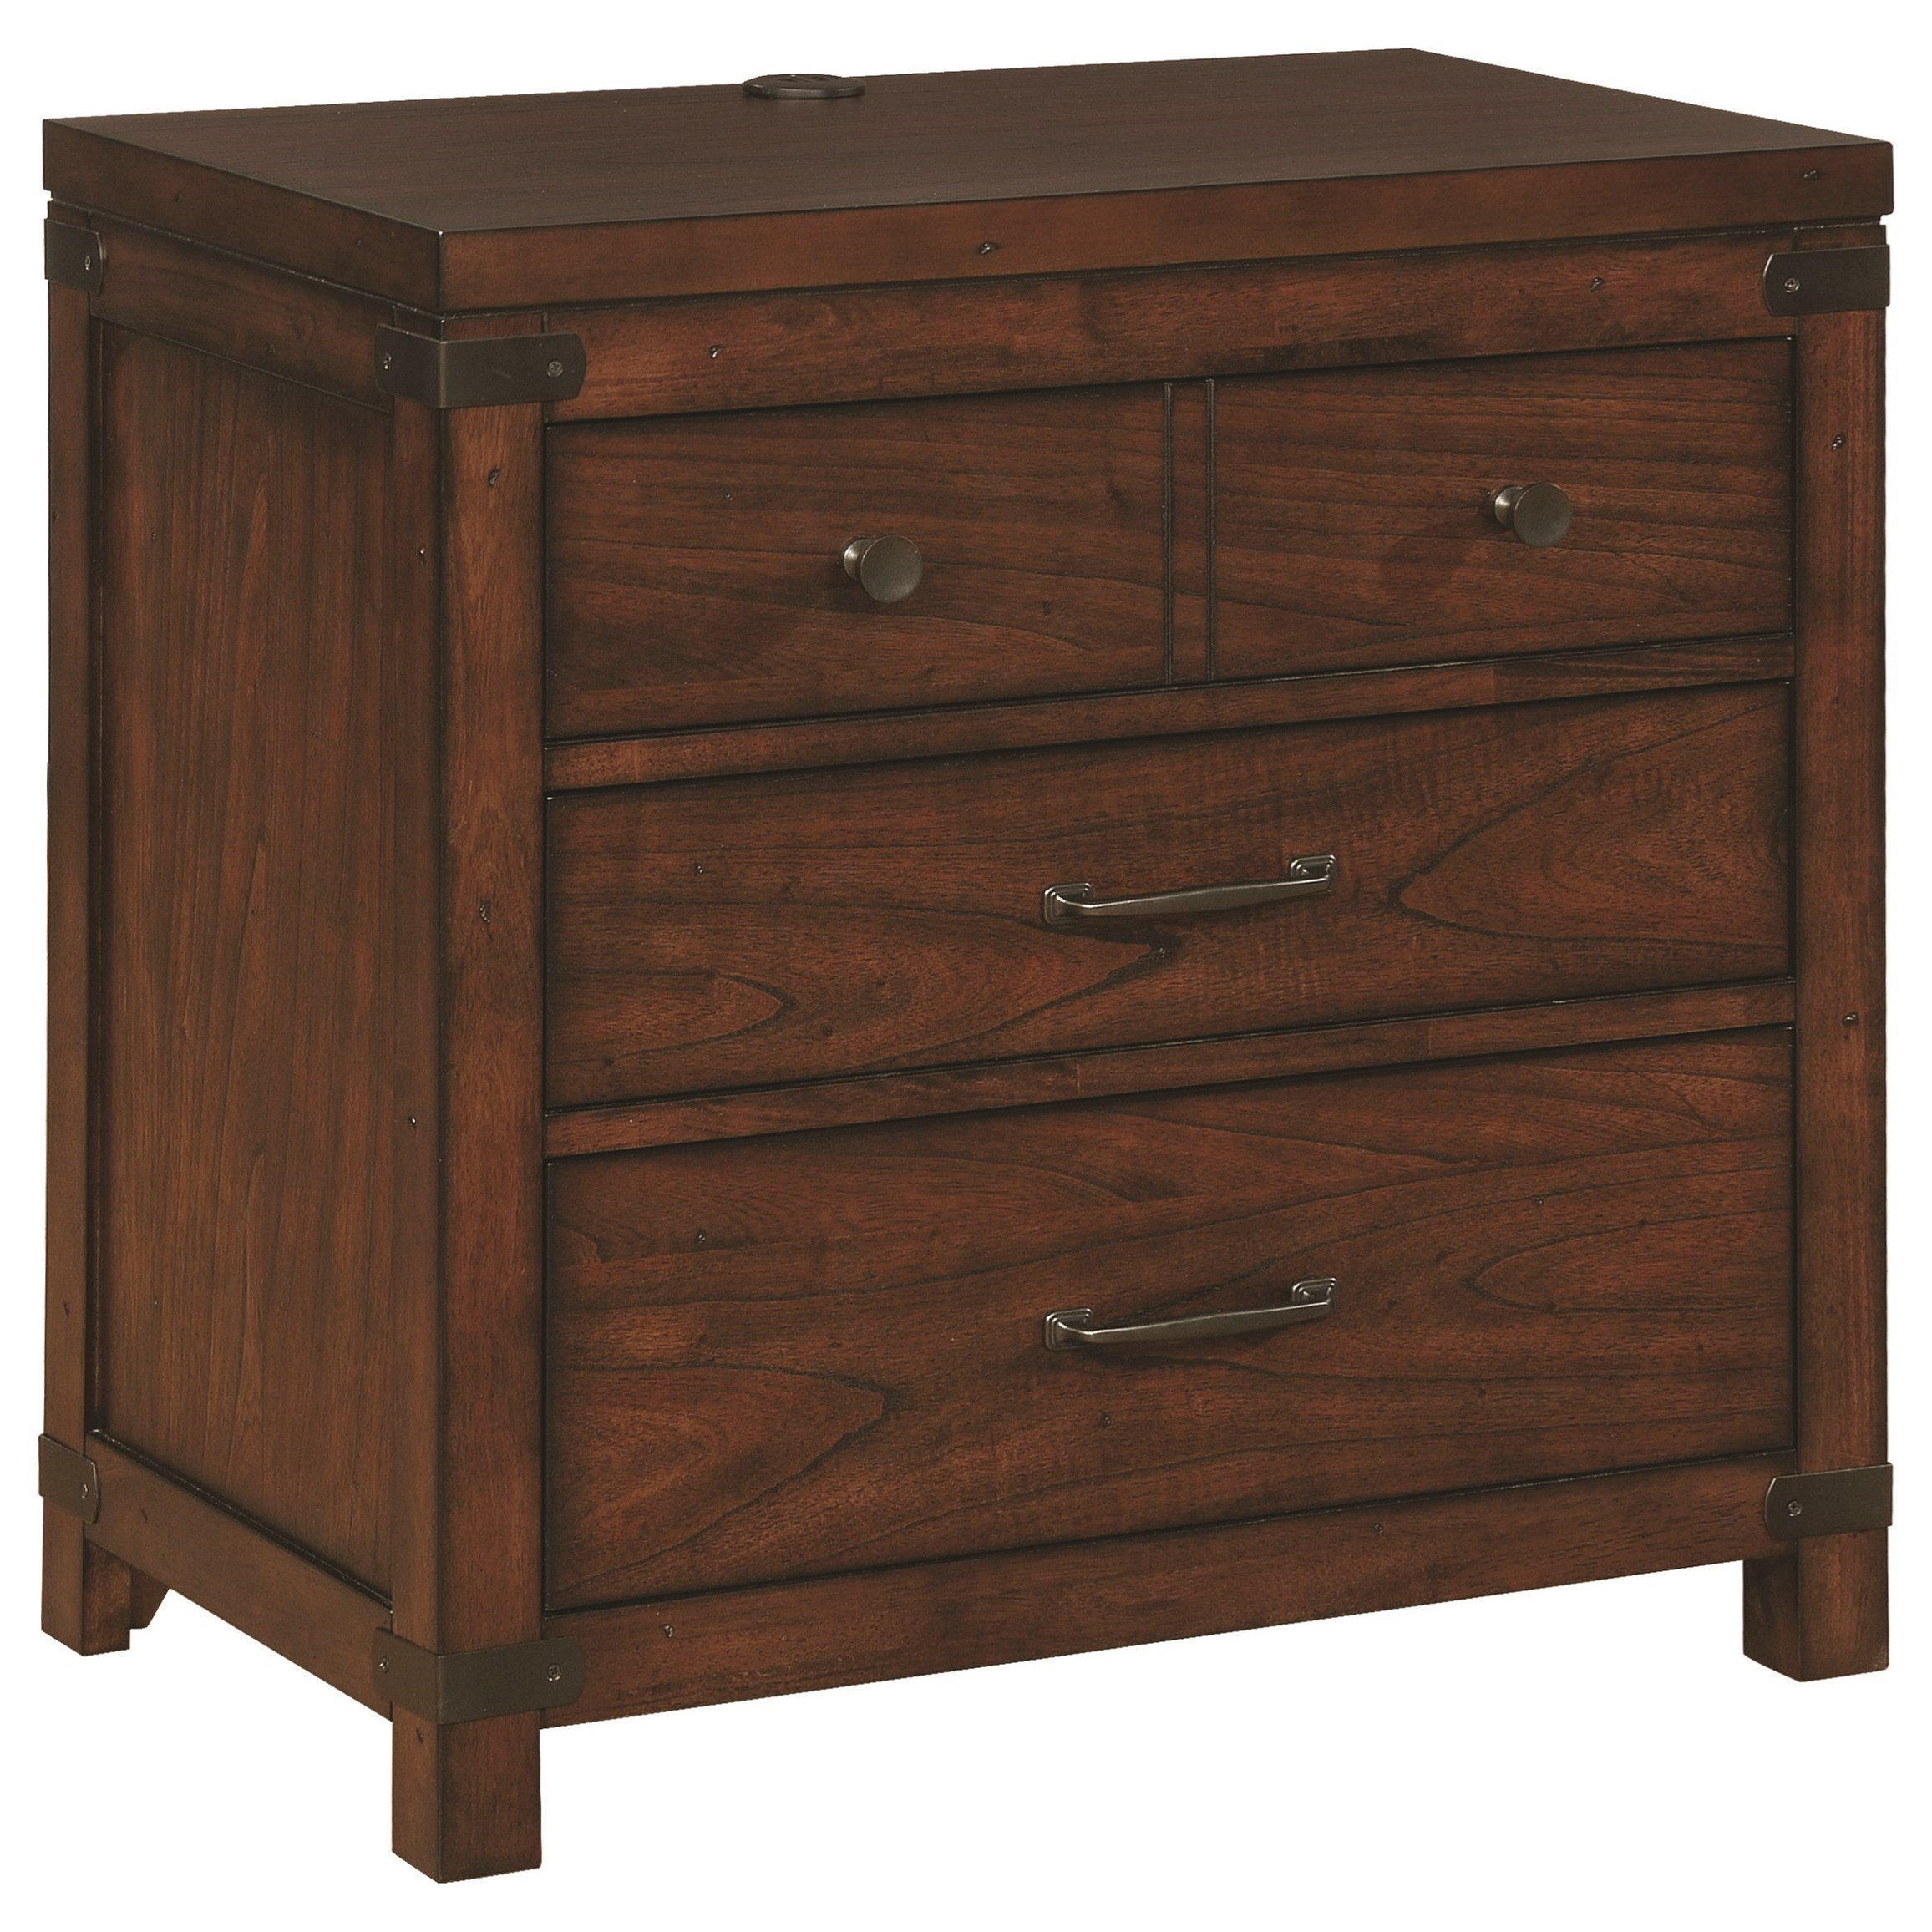 Scott Living Artesia 3 Drawer Nightstand - Item Number: 204476